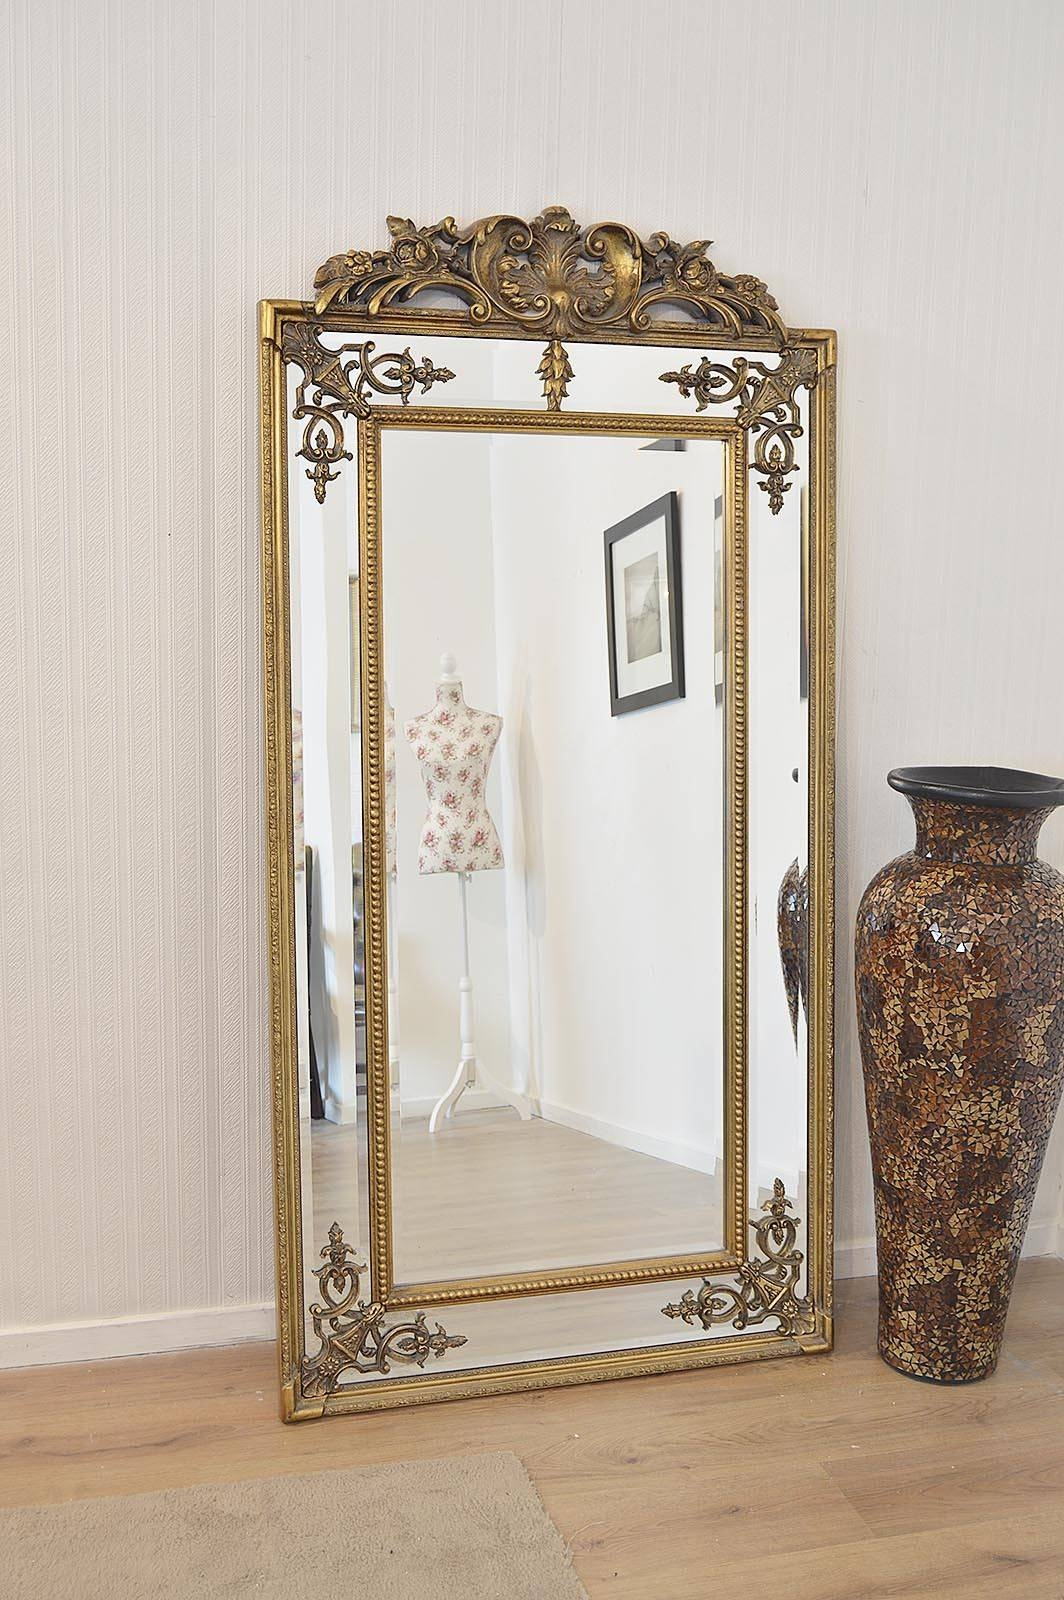 Ornate Mirrors For Sale 23 Beautiful Decoration Also Zoom regarding Ornate Large Mirrors (Image 18 of 25)